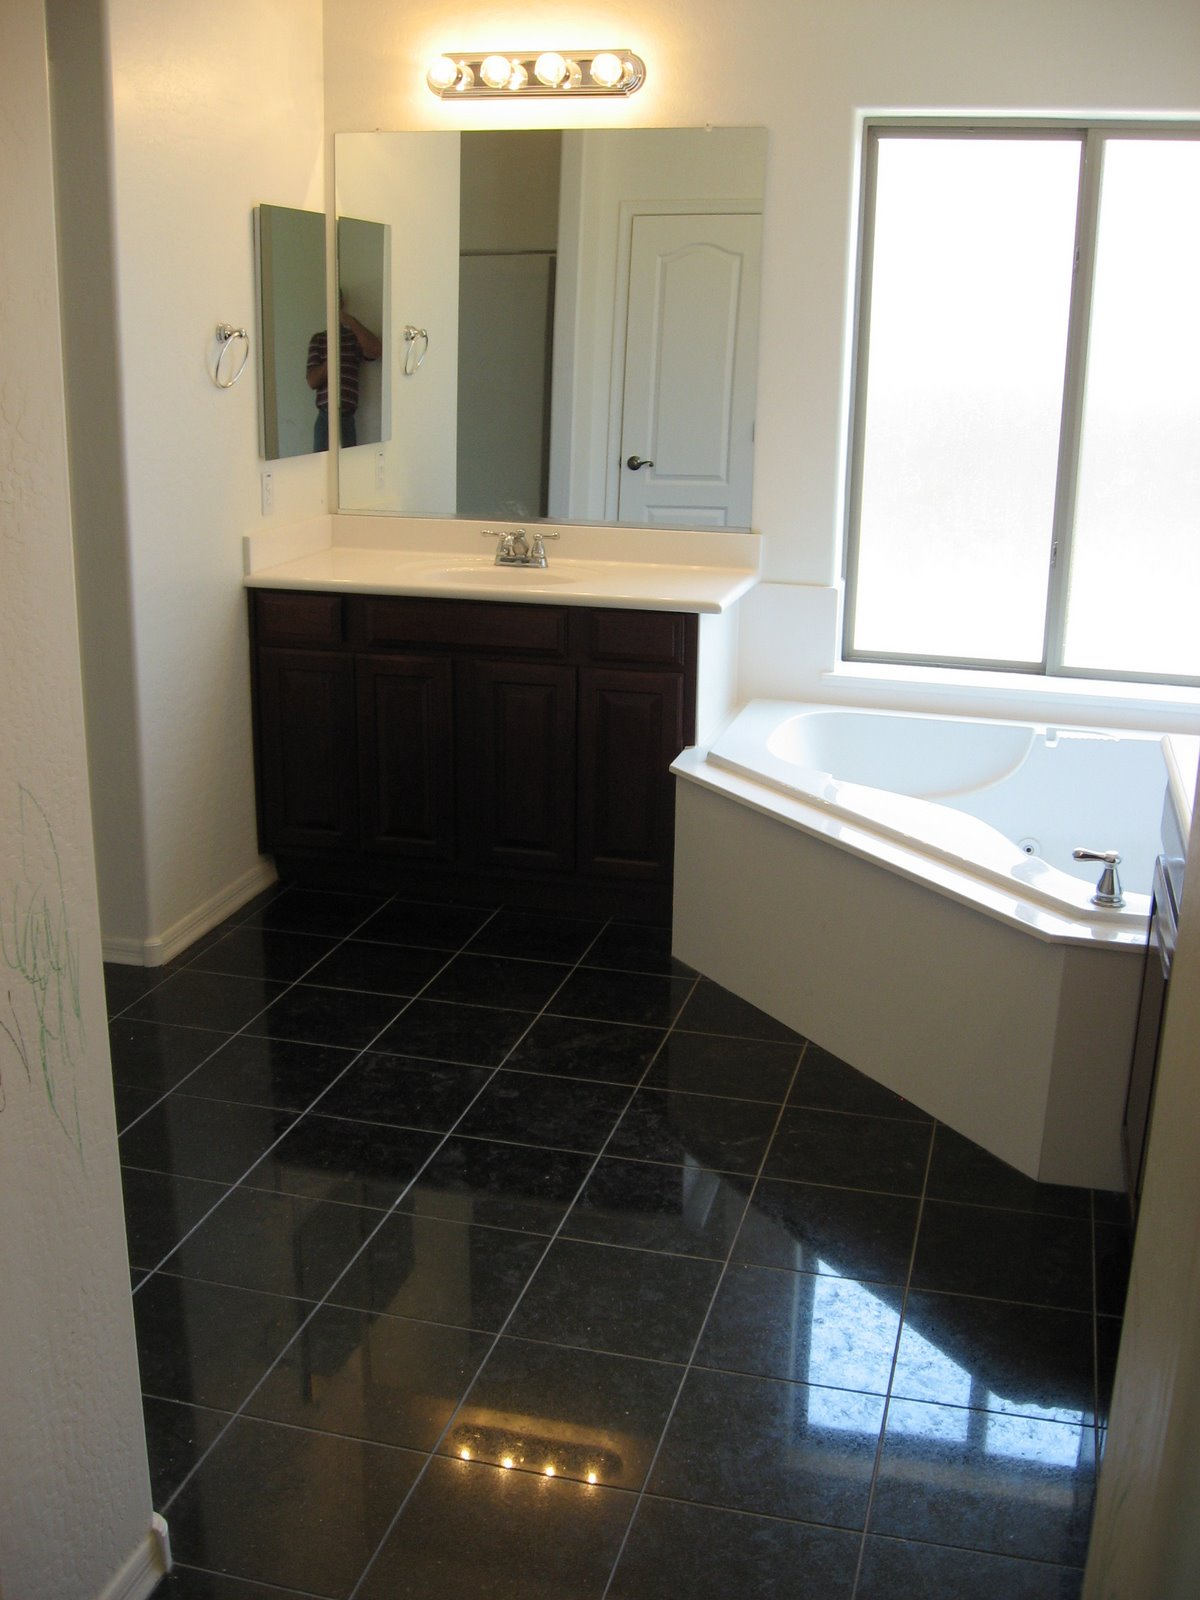 Black Granite Bathroom Floor Tiles - Thedancingparent.com